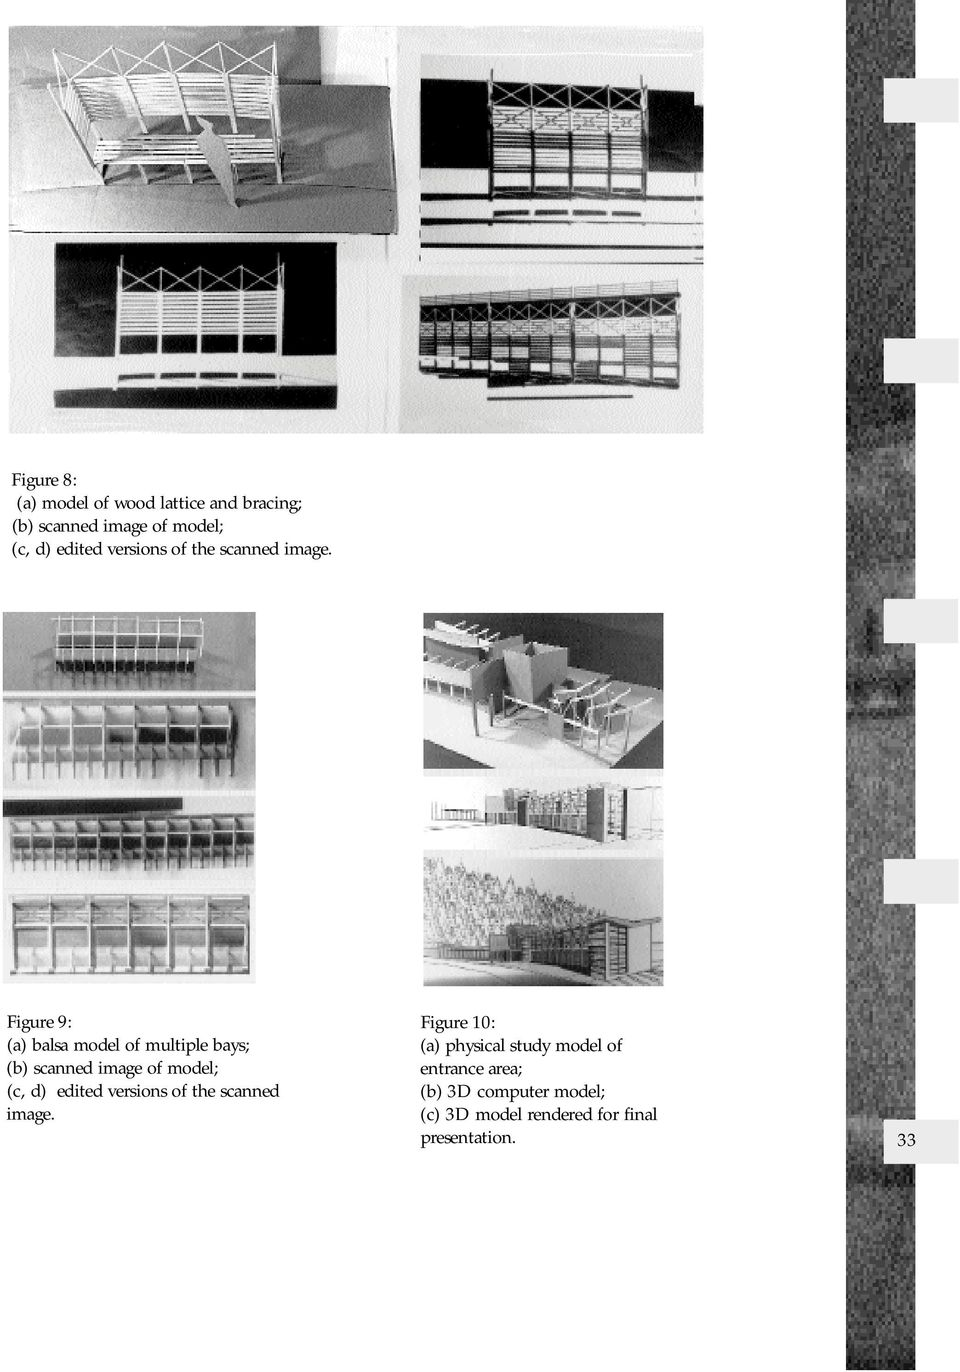 Figure 9: (a) balsa model of multiple bays; (b) scanned image of model; (c, d) edited